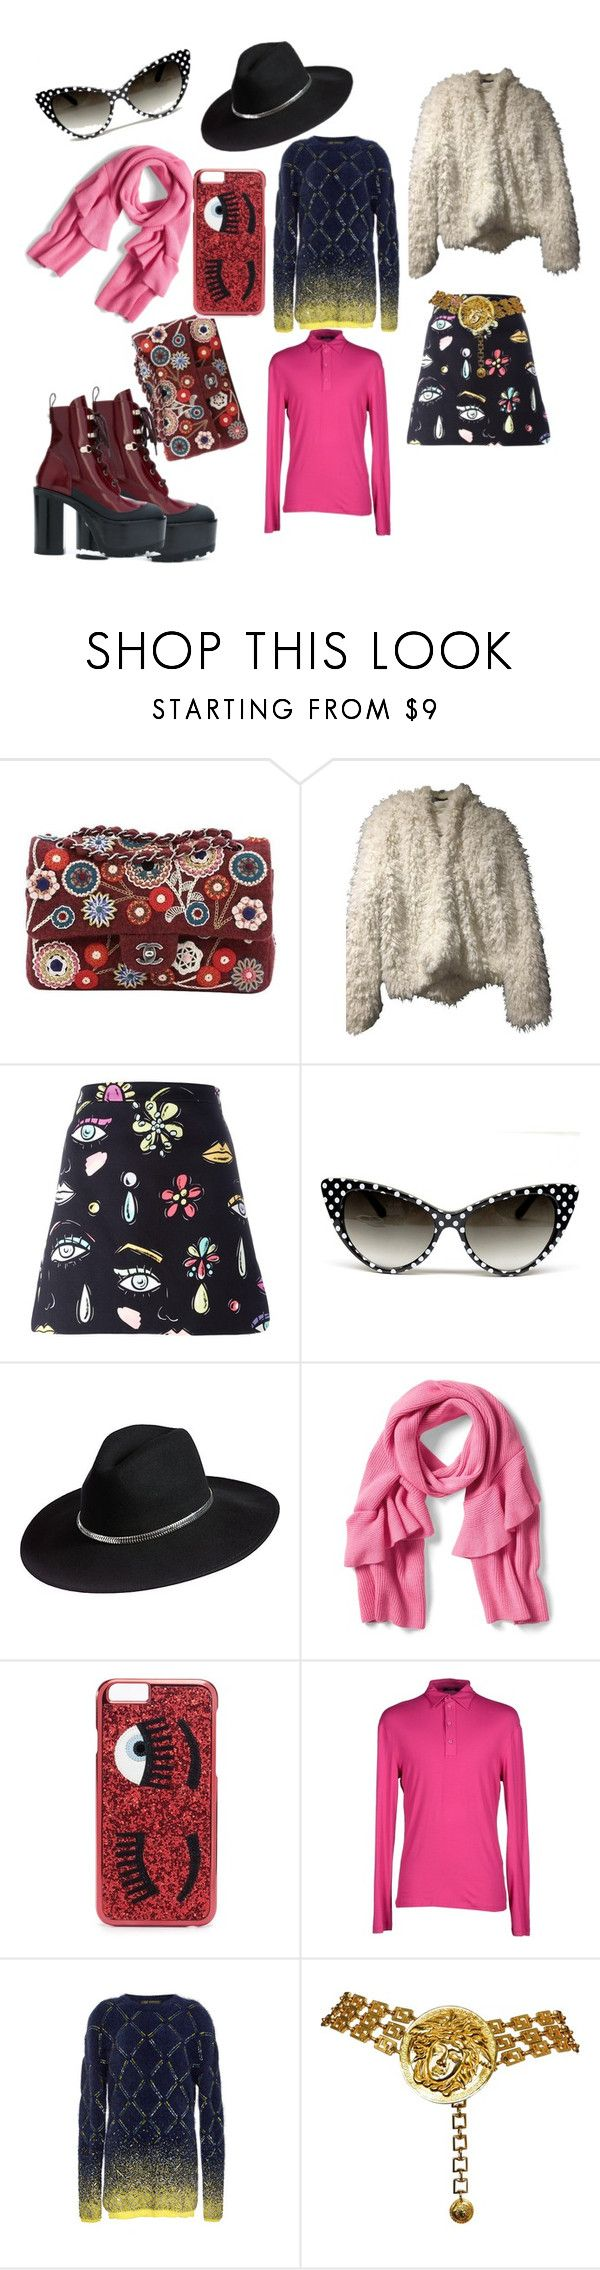 """""""Ragazza Posh pt1"""" by shadowsweety on Polyvore featuring Chanel, Boutique Moschino, Overland Sheepskin Co., Chiara Ferragni, Versace Jeans Couture and Versace"""